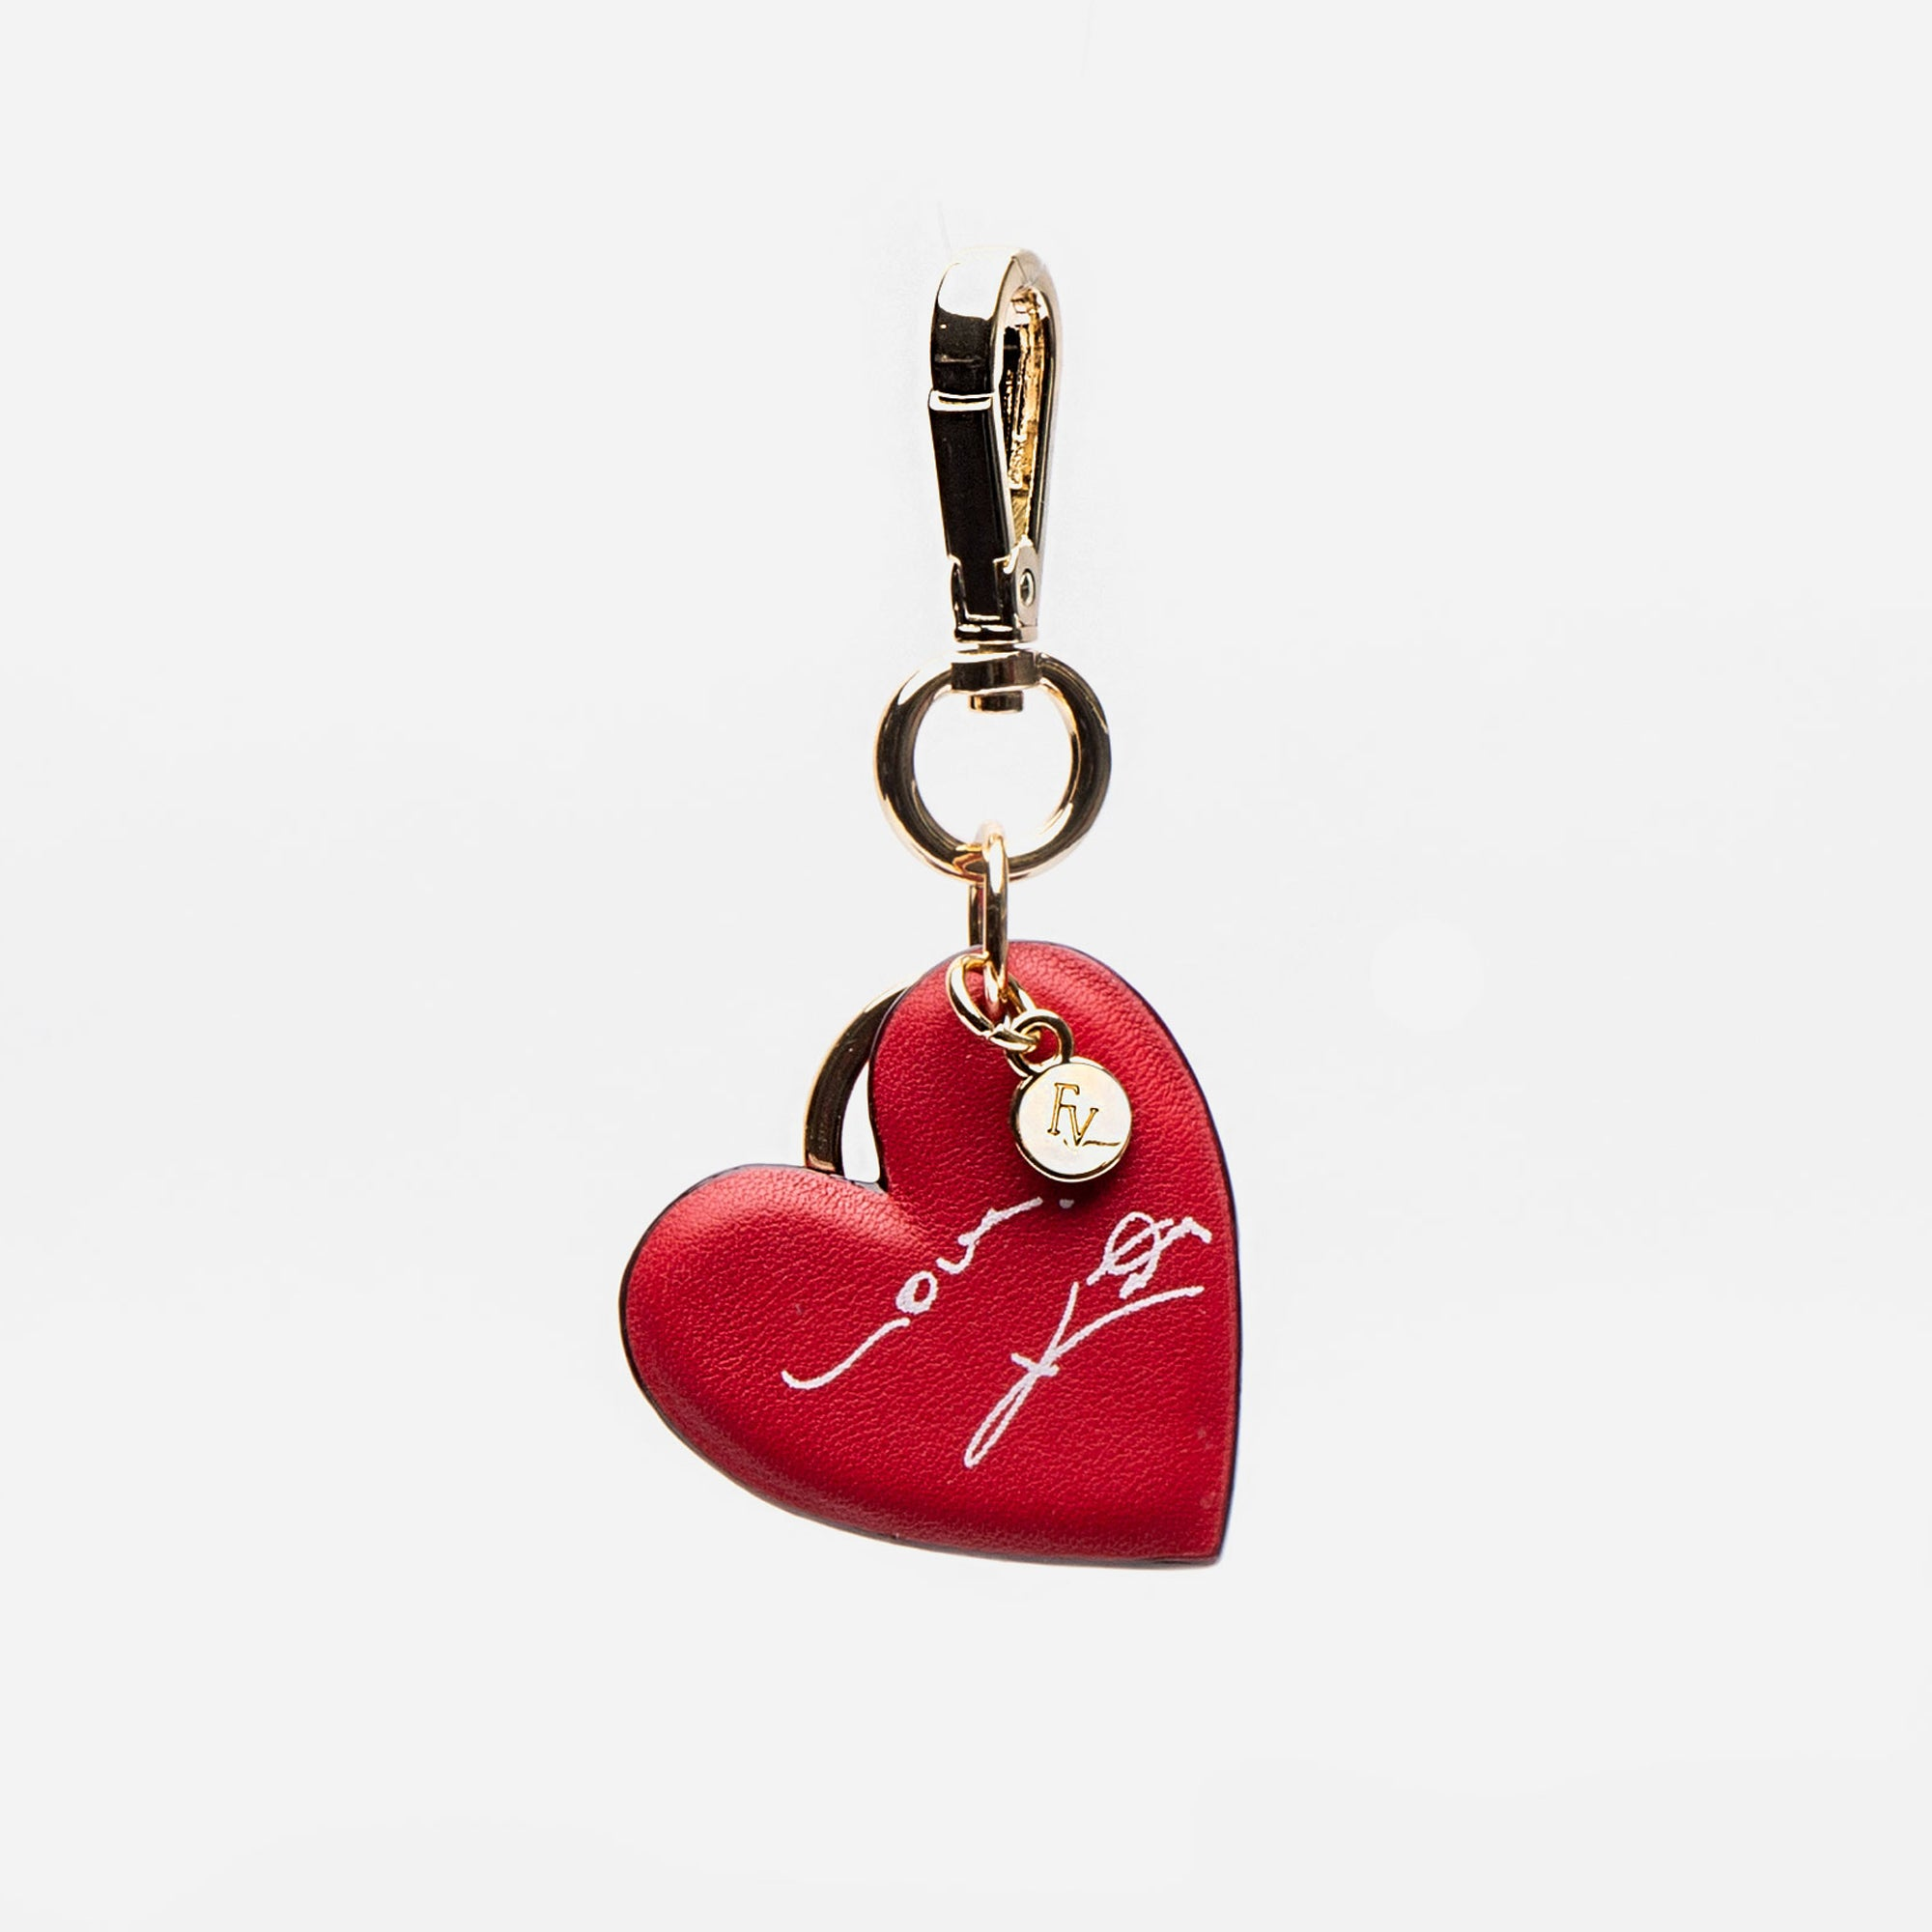 Katy Heart Keychain Red